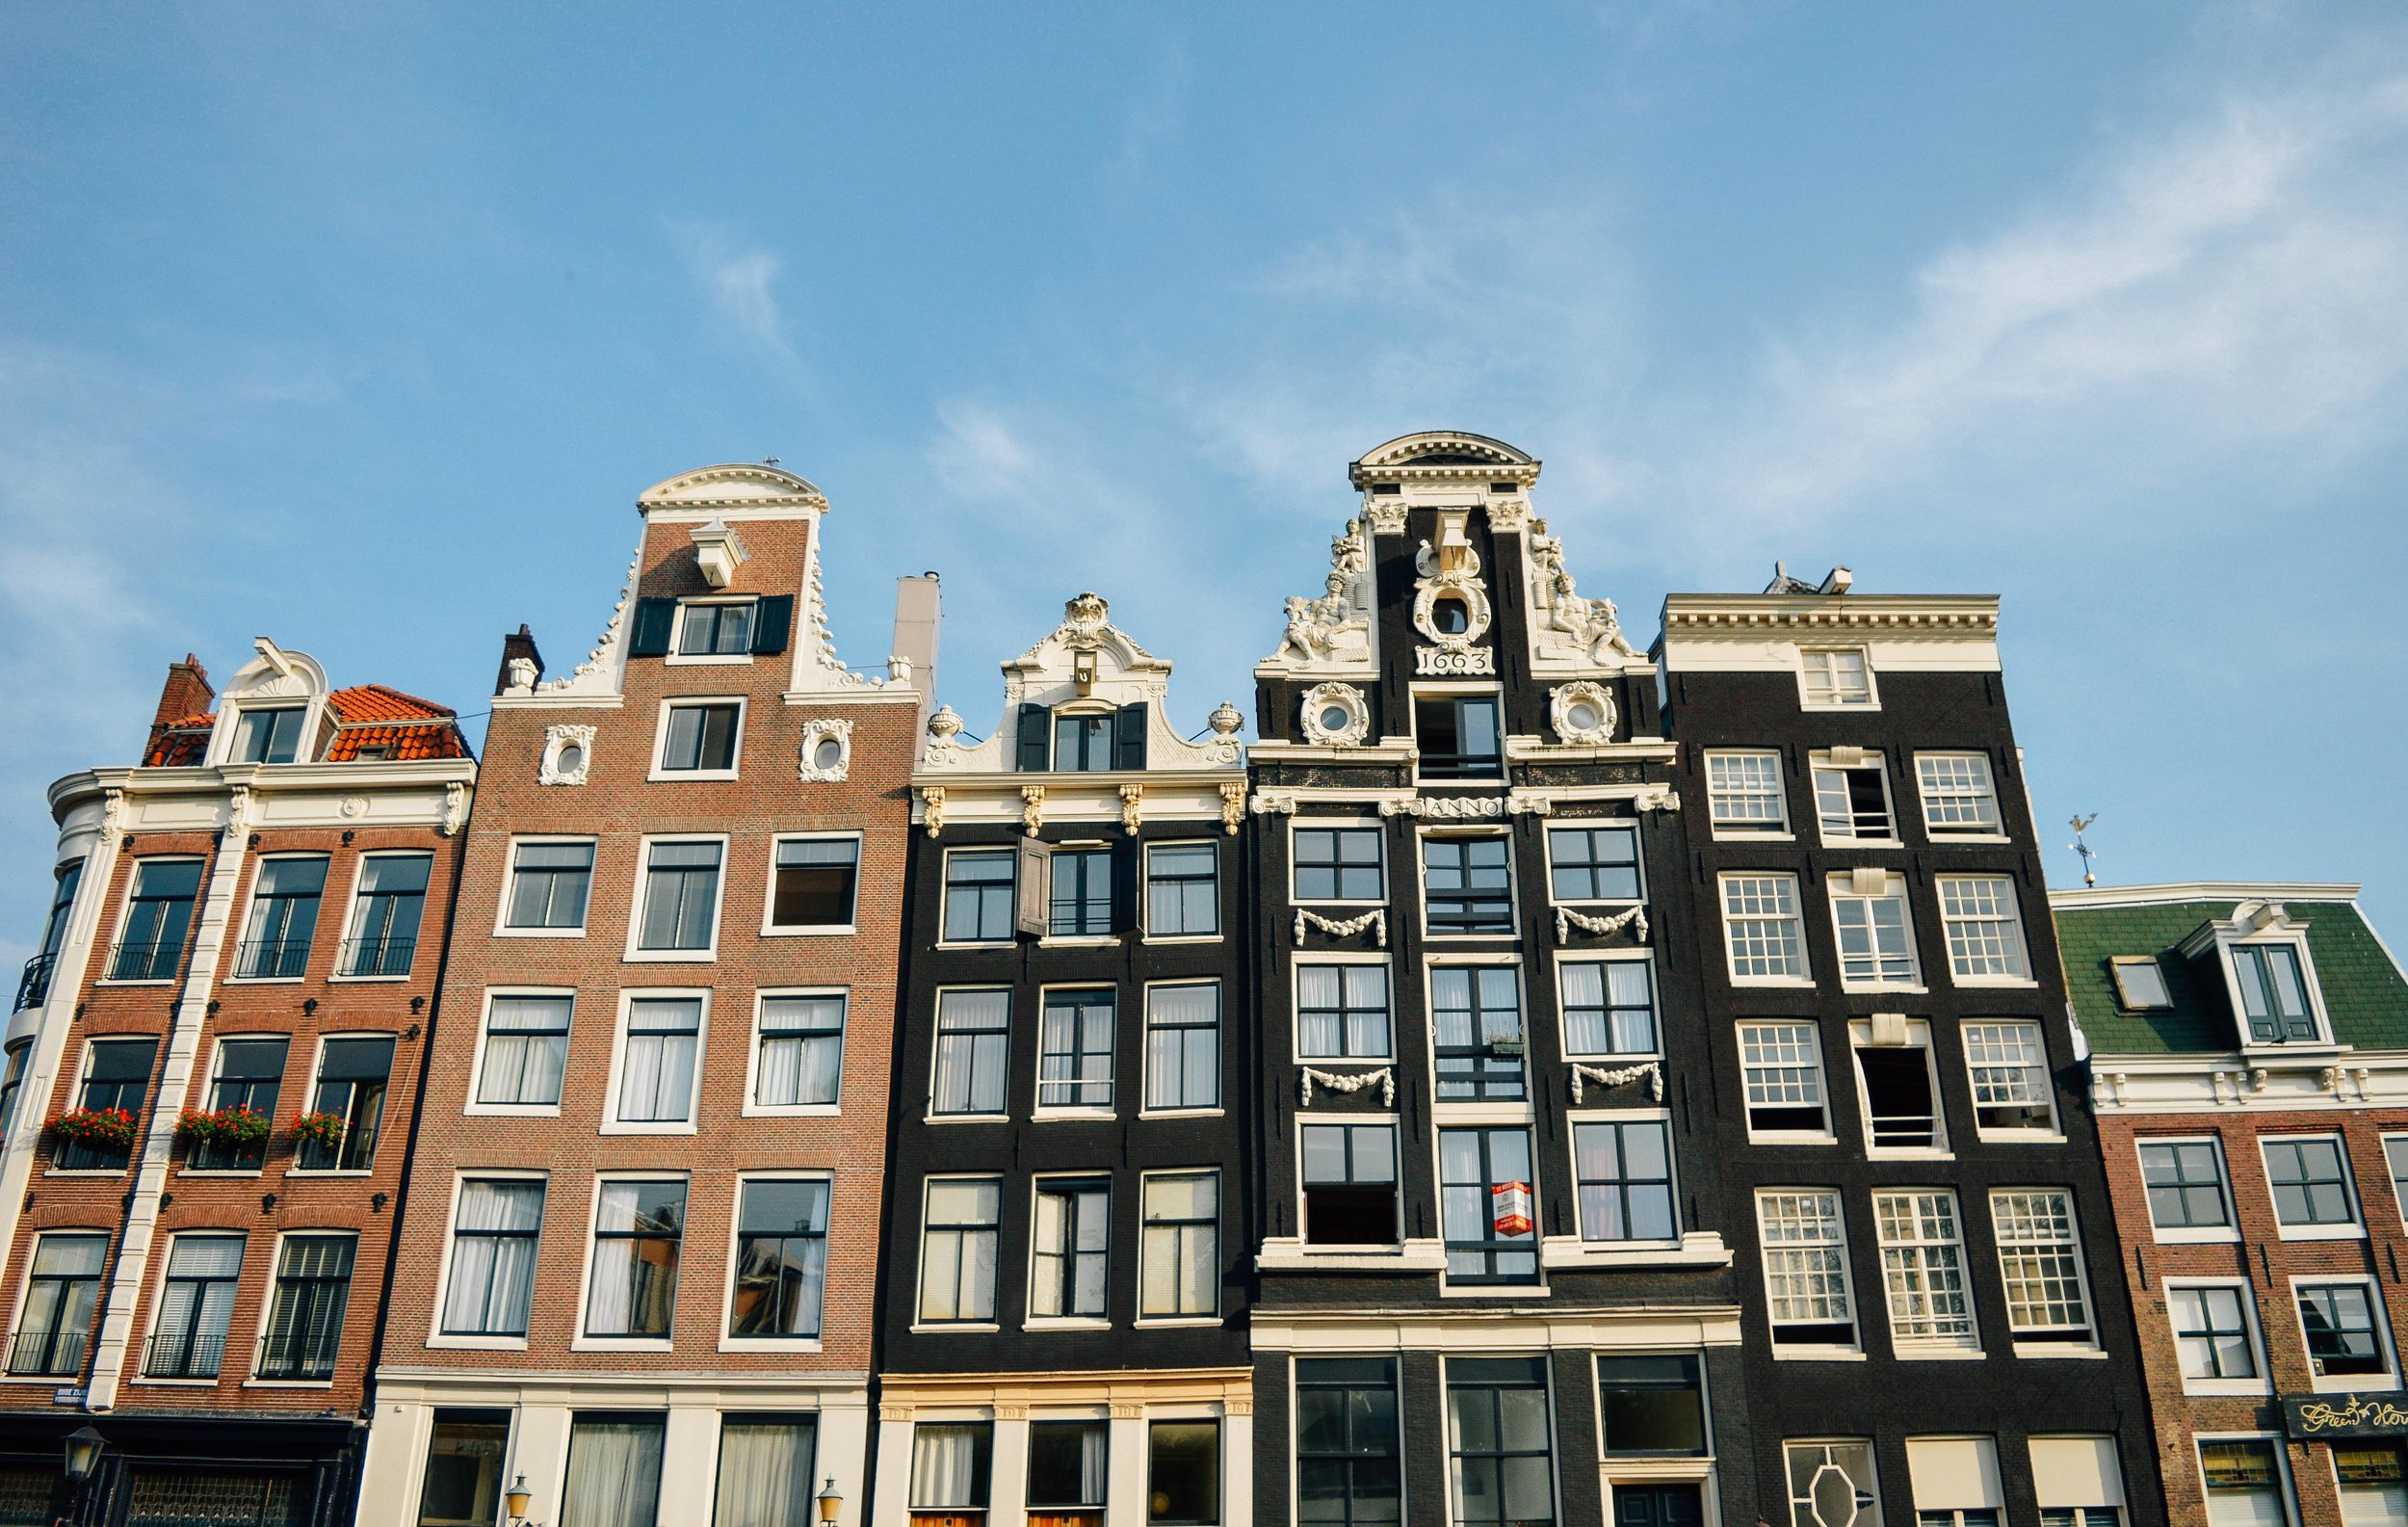 Amsterdam architecture Voyage Collective Fi McCrindle